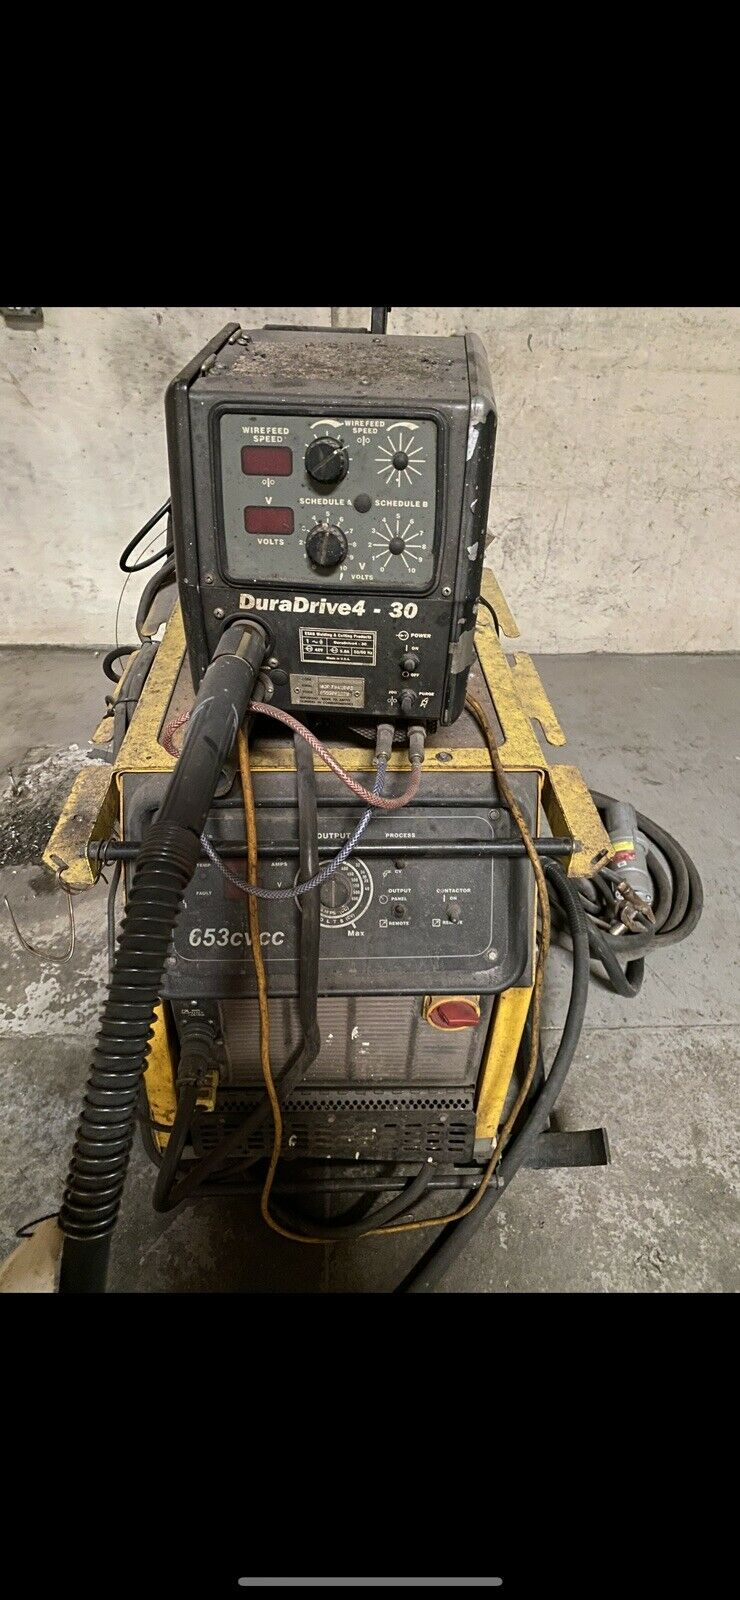 ESAB 653 CVCC Welder with DuraDrive 4 - 30 Wire Feeder with Foot Control. Available Now for 4500.00